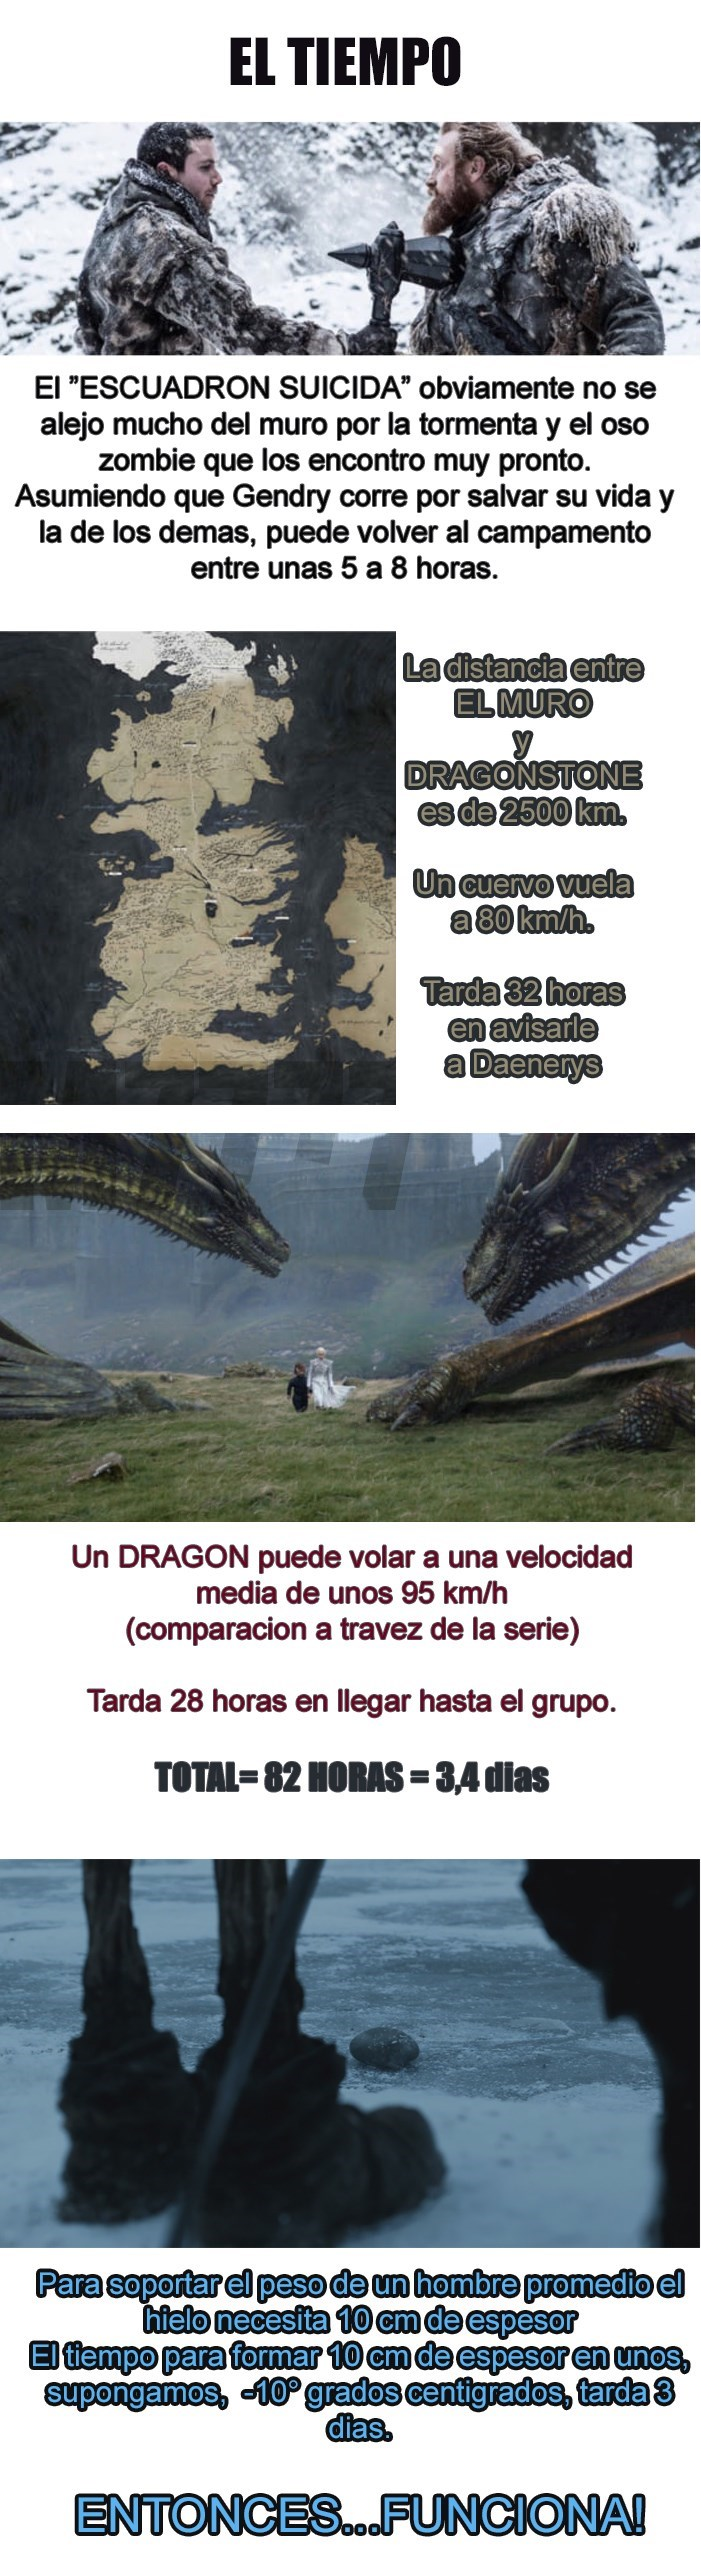 teoria del ultimo episodio de game of thrones